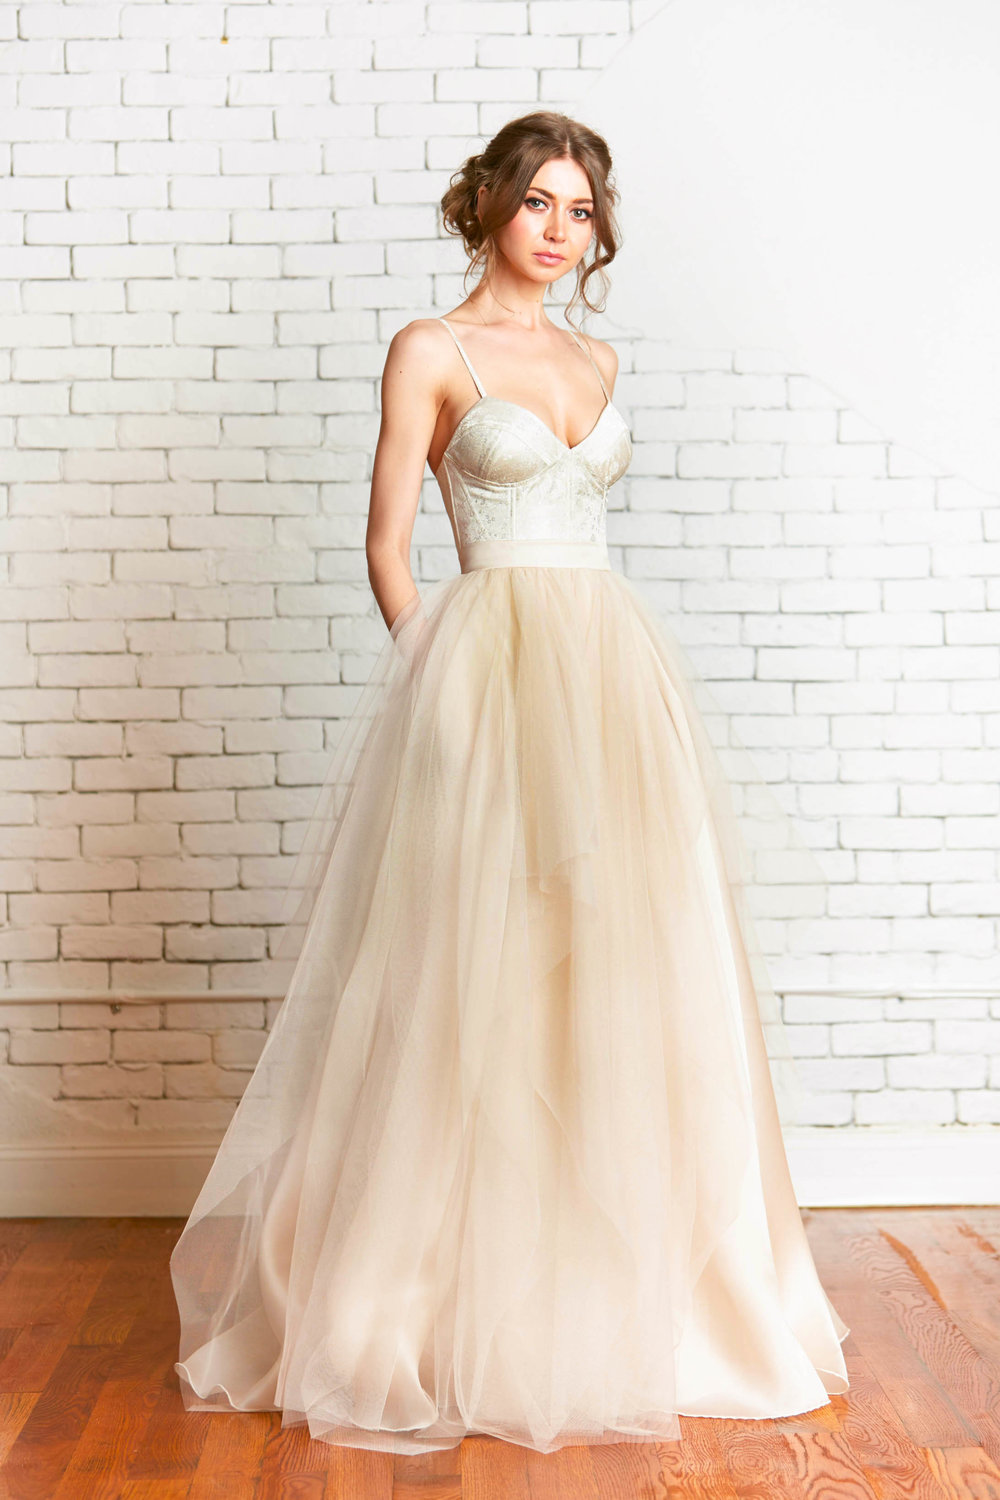 Avery-McKinleyGown$$$-223.jpg